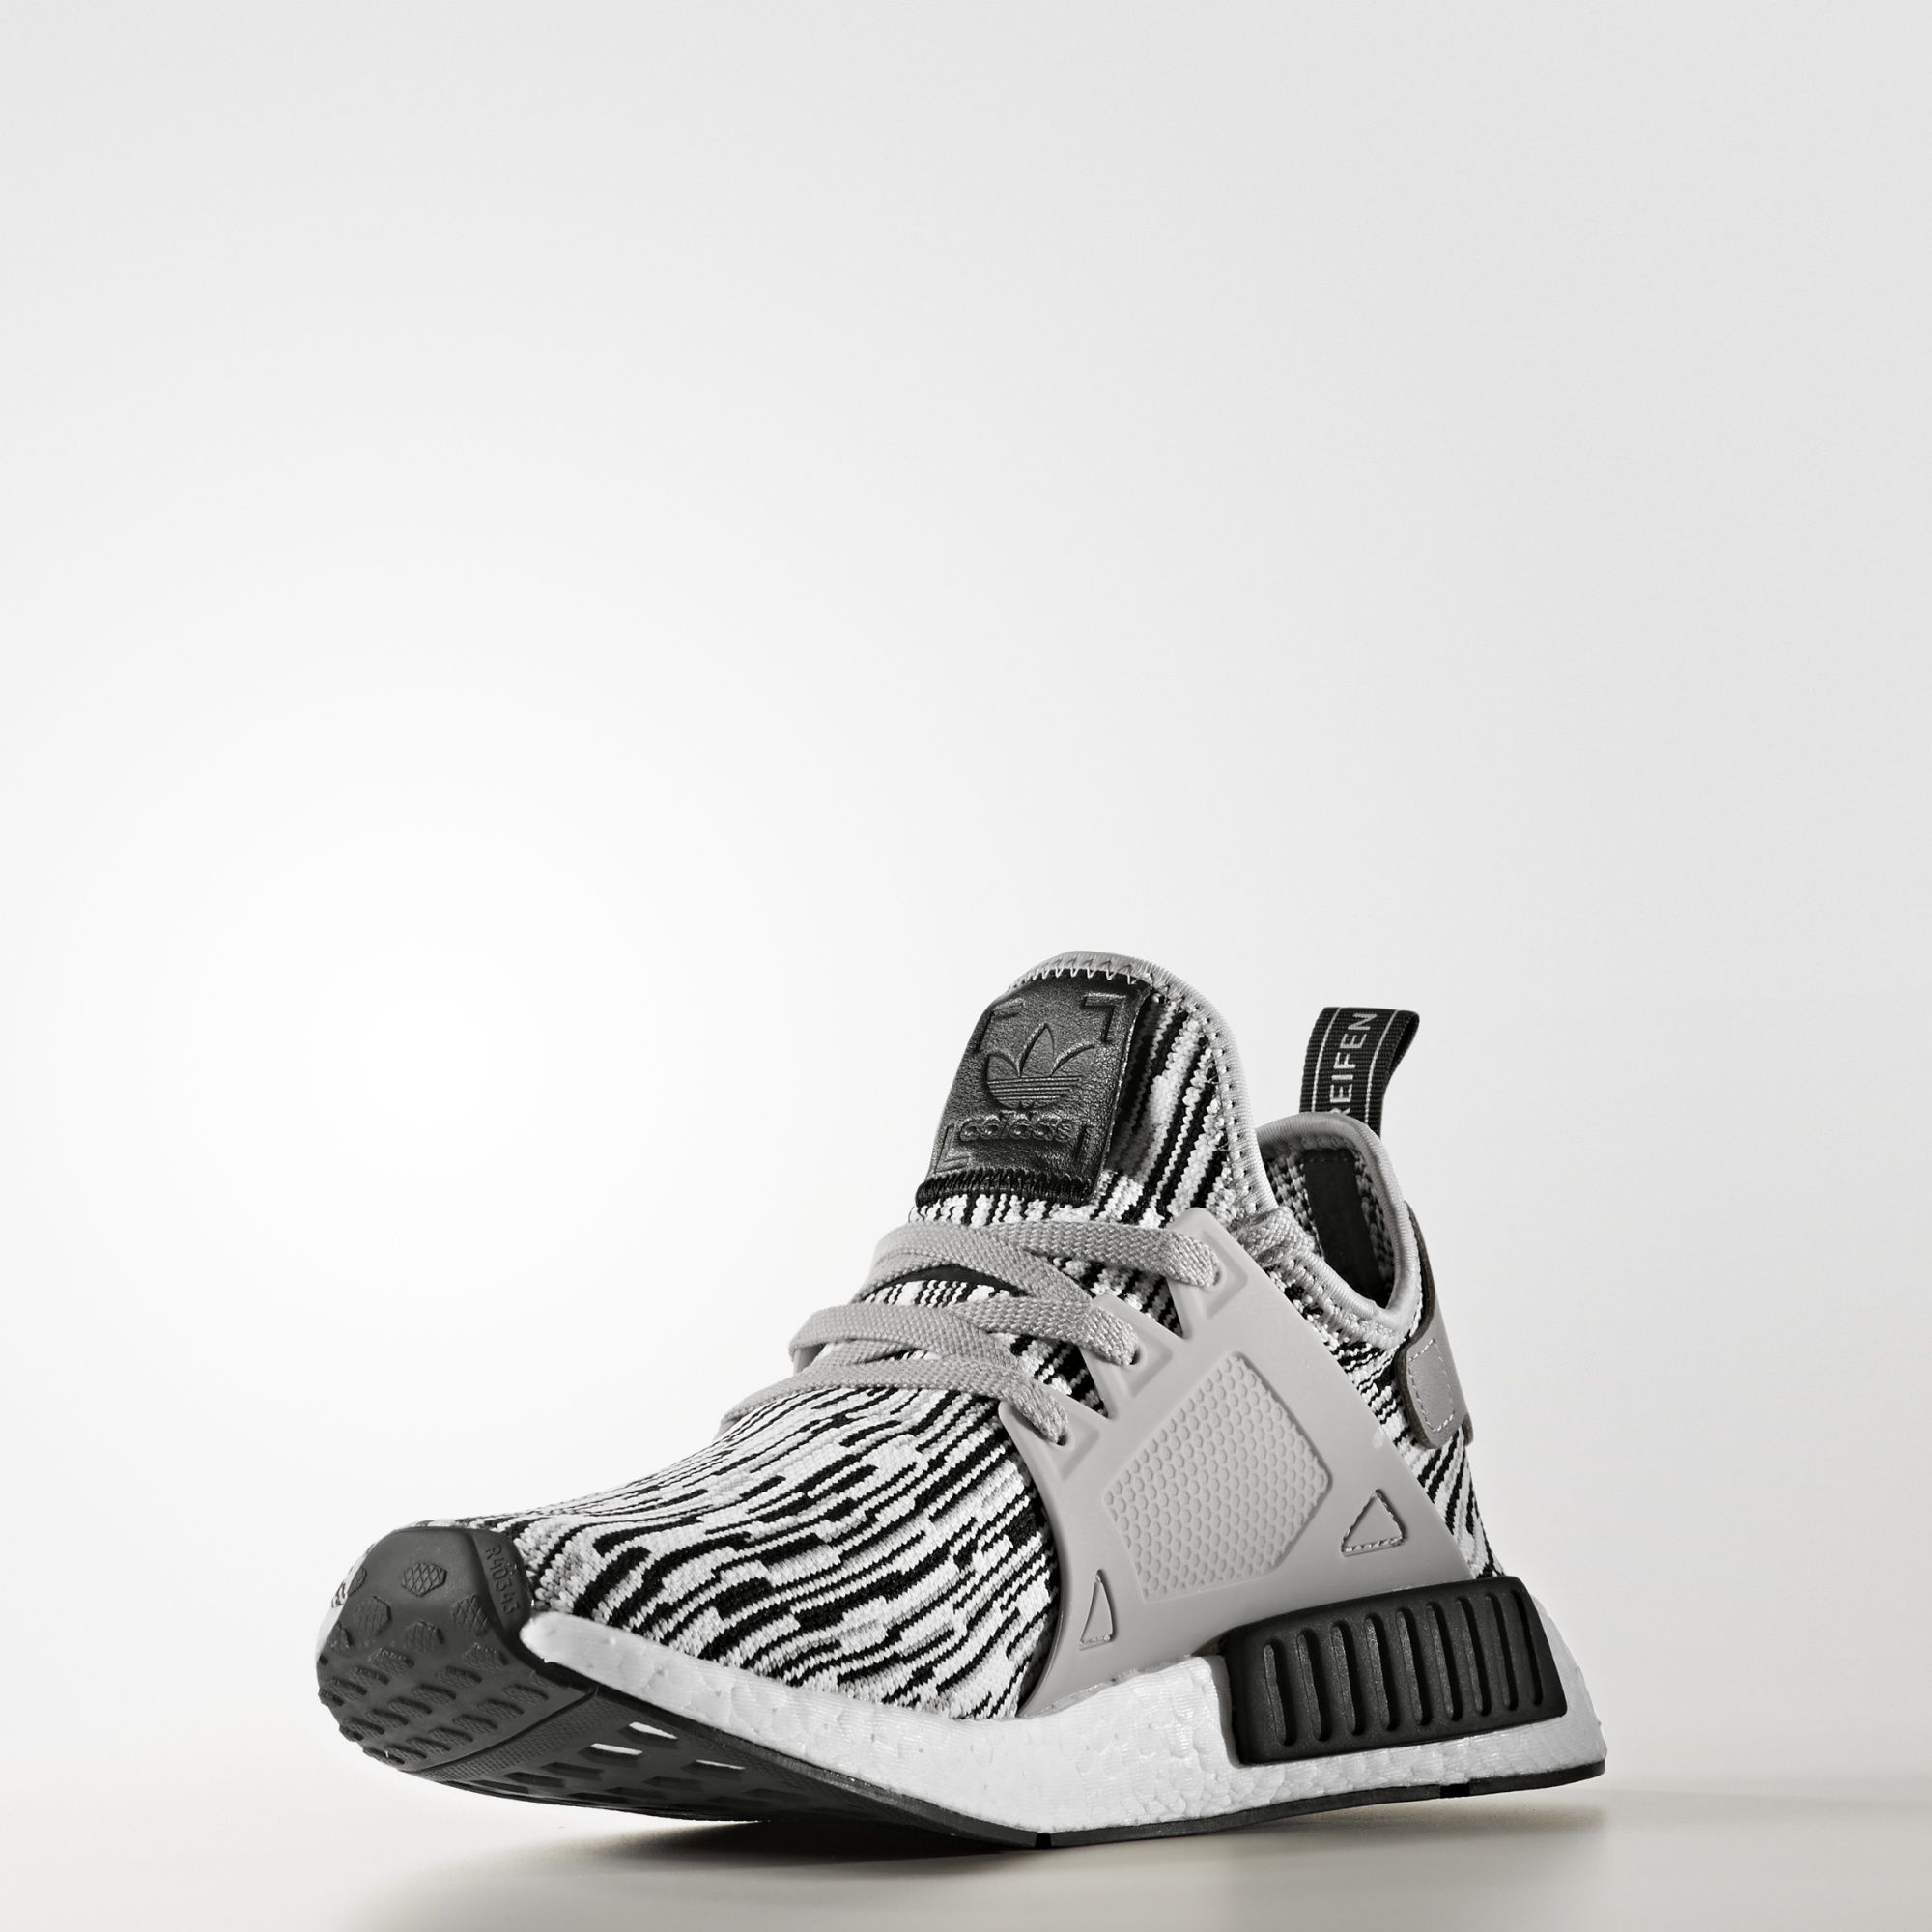 adidas NMD XR1 Zebra BY1910 2